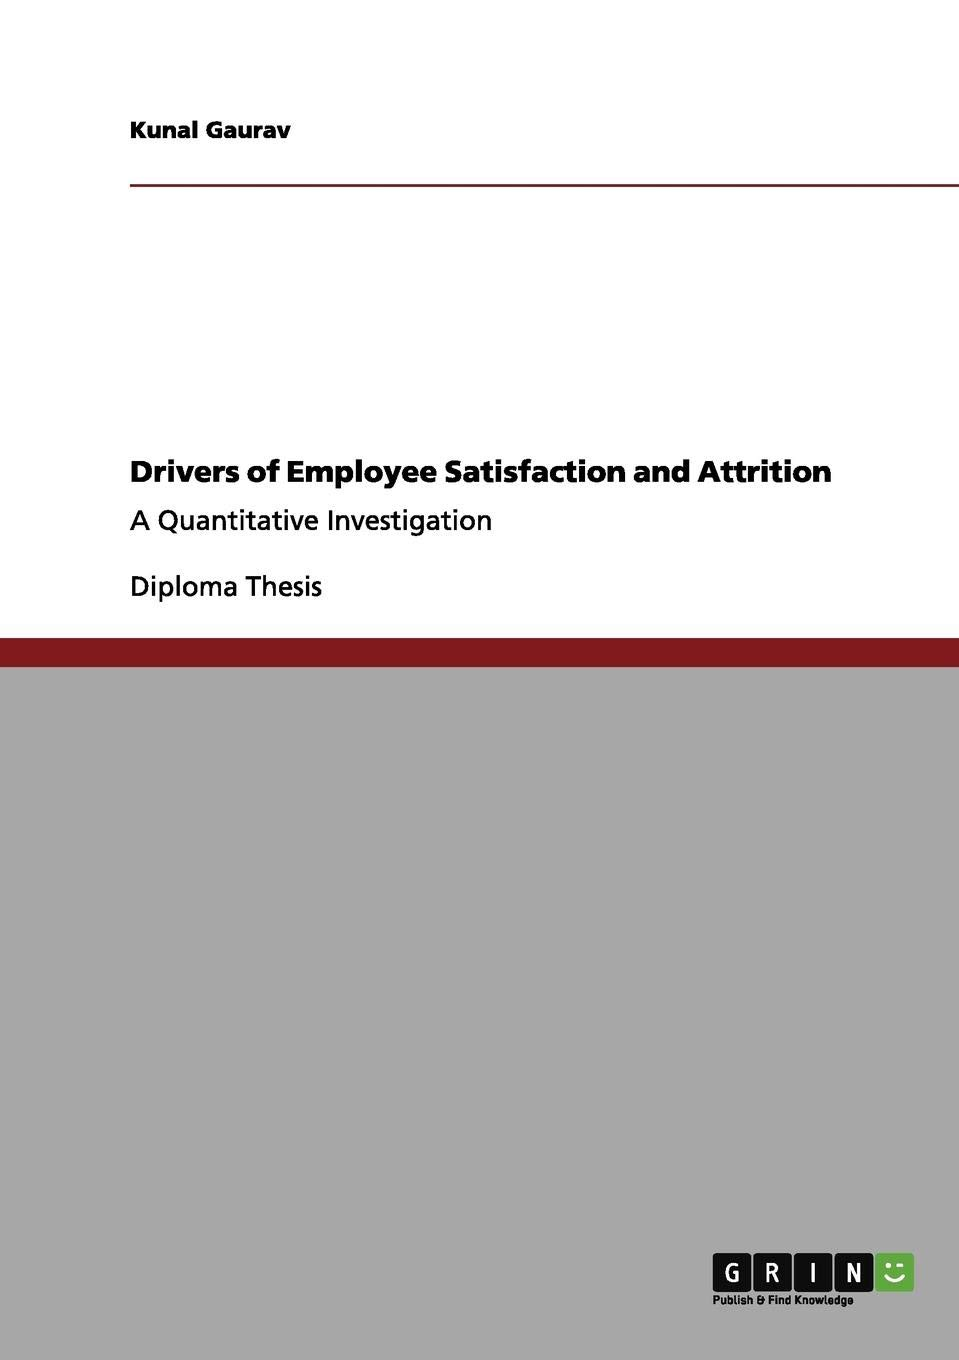 Drivers of Employee Satisfaction and Attrition: A Quantitative Investigation